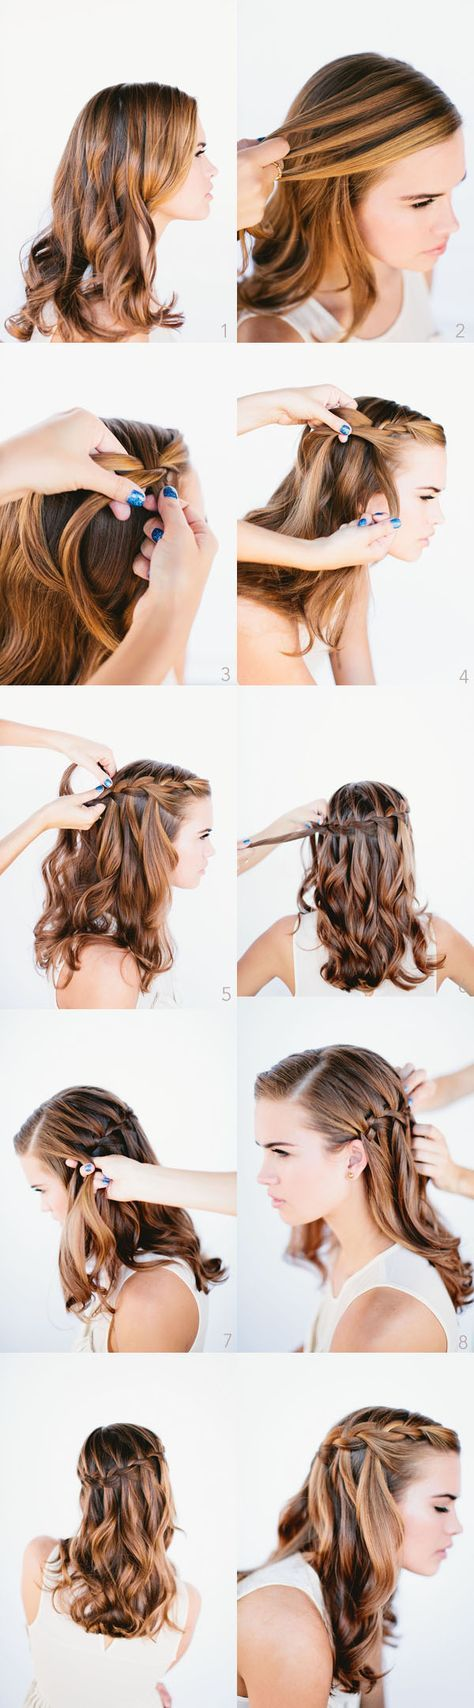 the 11 best braid tutorials holy communion hair styles pinterest. Black Bedroom Furniture Sets. Home Design Ideas